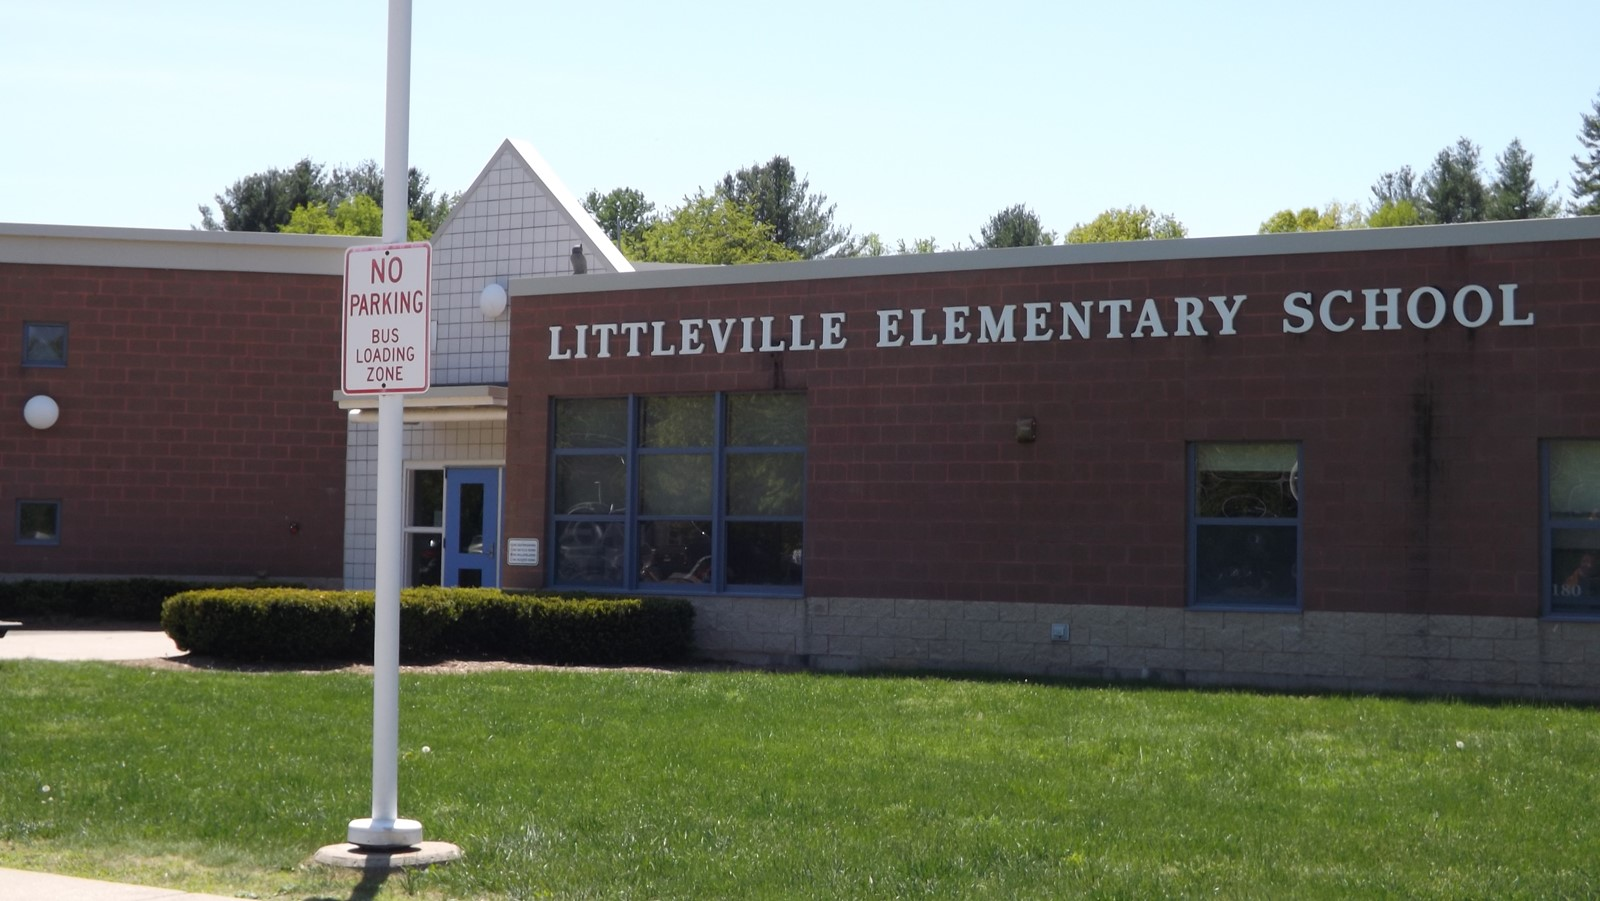 Mission Statement: We the faculty and staff at Littleville Elementary School, believe in the unique potential of each child to learn and contribute to their community. With the support of parents and the community of Littleville Elementary it is our goal to facilitate the development of the intellectual ability, personal responsibility and positive self-esteem of our students.     Vision: The Littleville Elementary School will promote respect and provide a positive quality education for all students.